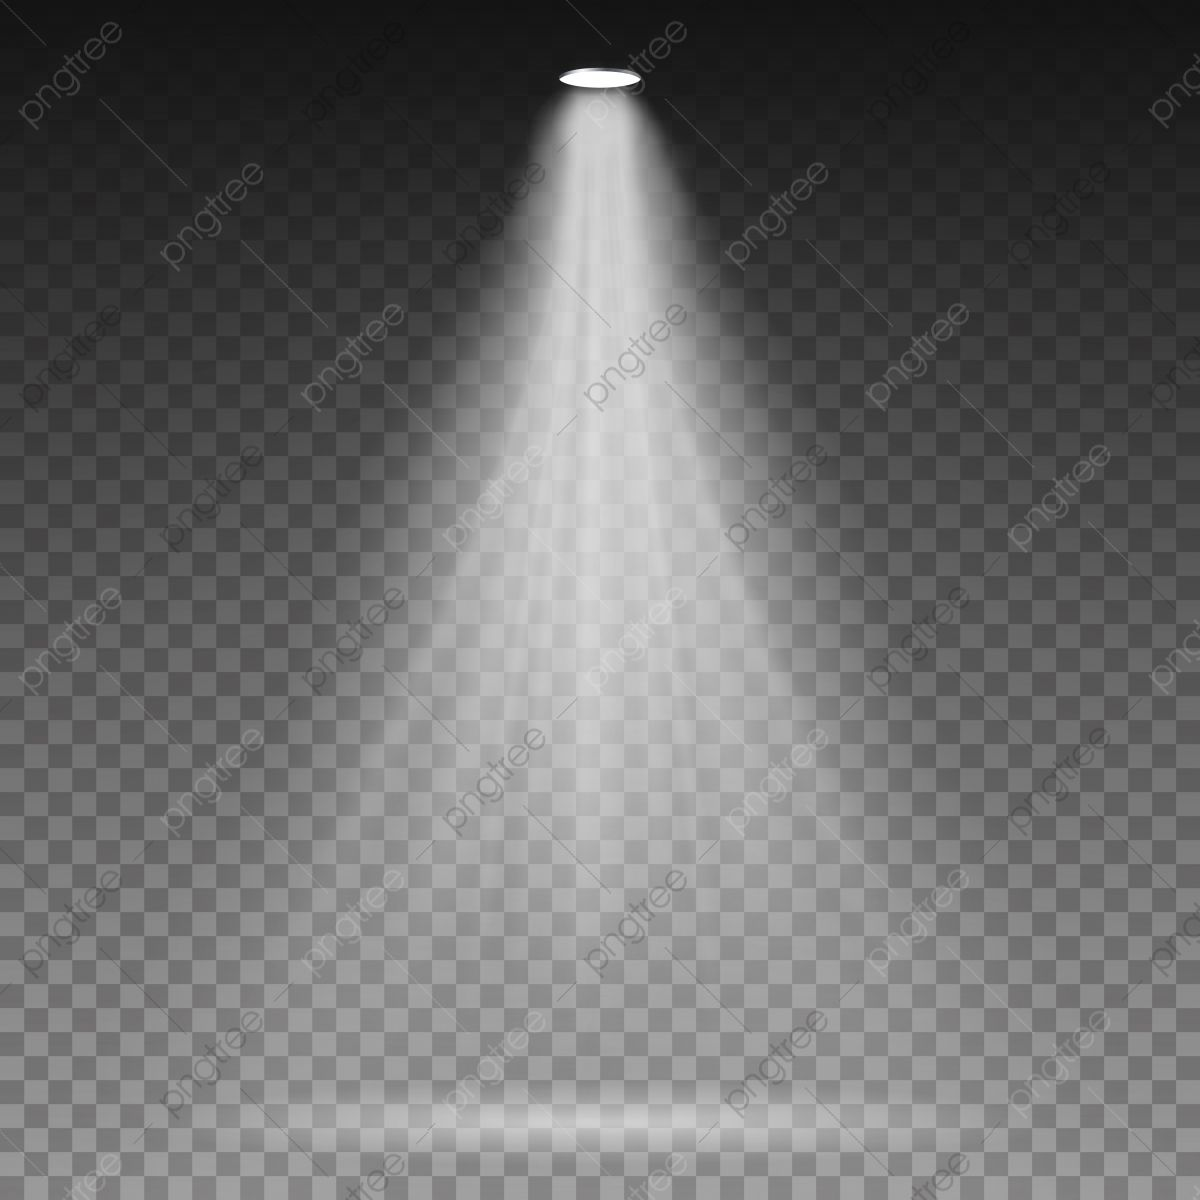 White Beam Lights Spotlights Vector Transparent Effect Bright Lighting With Spotlights Spotlight Light Beam Png And Vector With Transparent Background For Fr Light Beam White Beams Light Bulb Vector